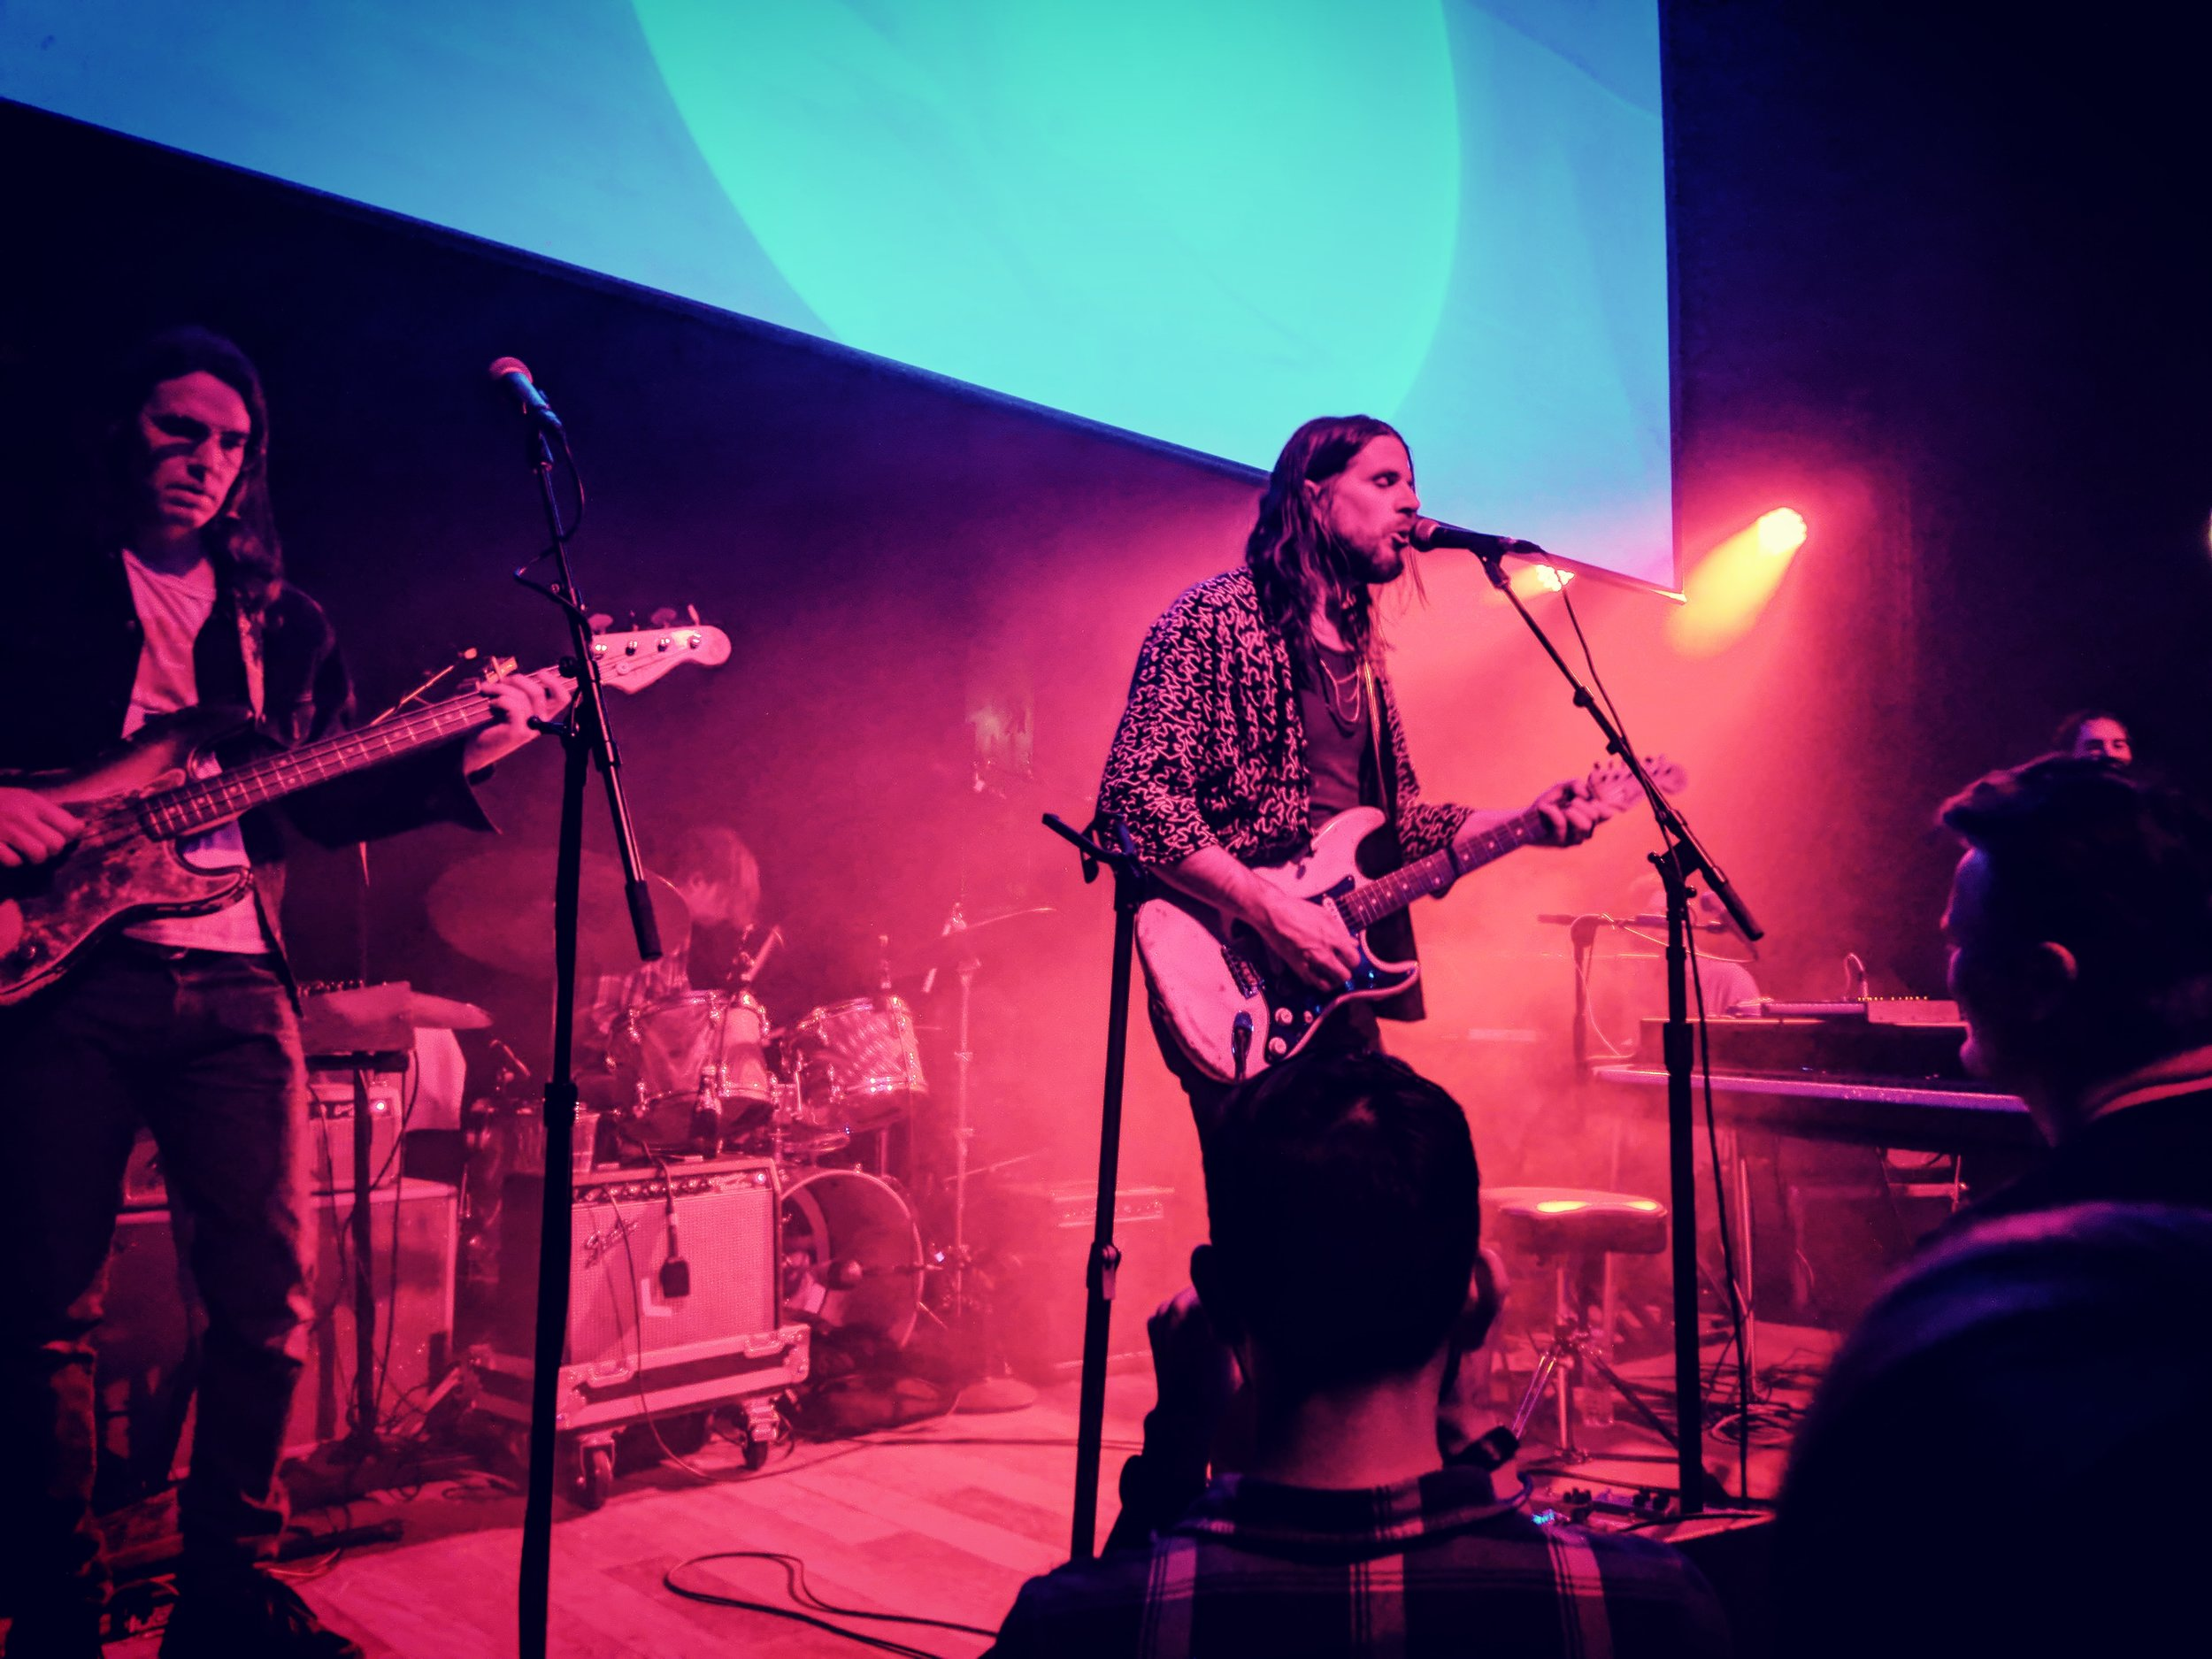 jonathan wilson | lincoln hall, chicago | 3.2.18 | @thefaakehipster